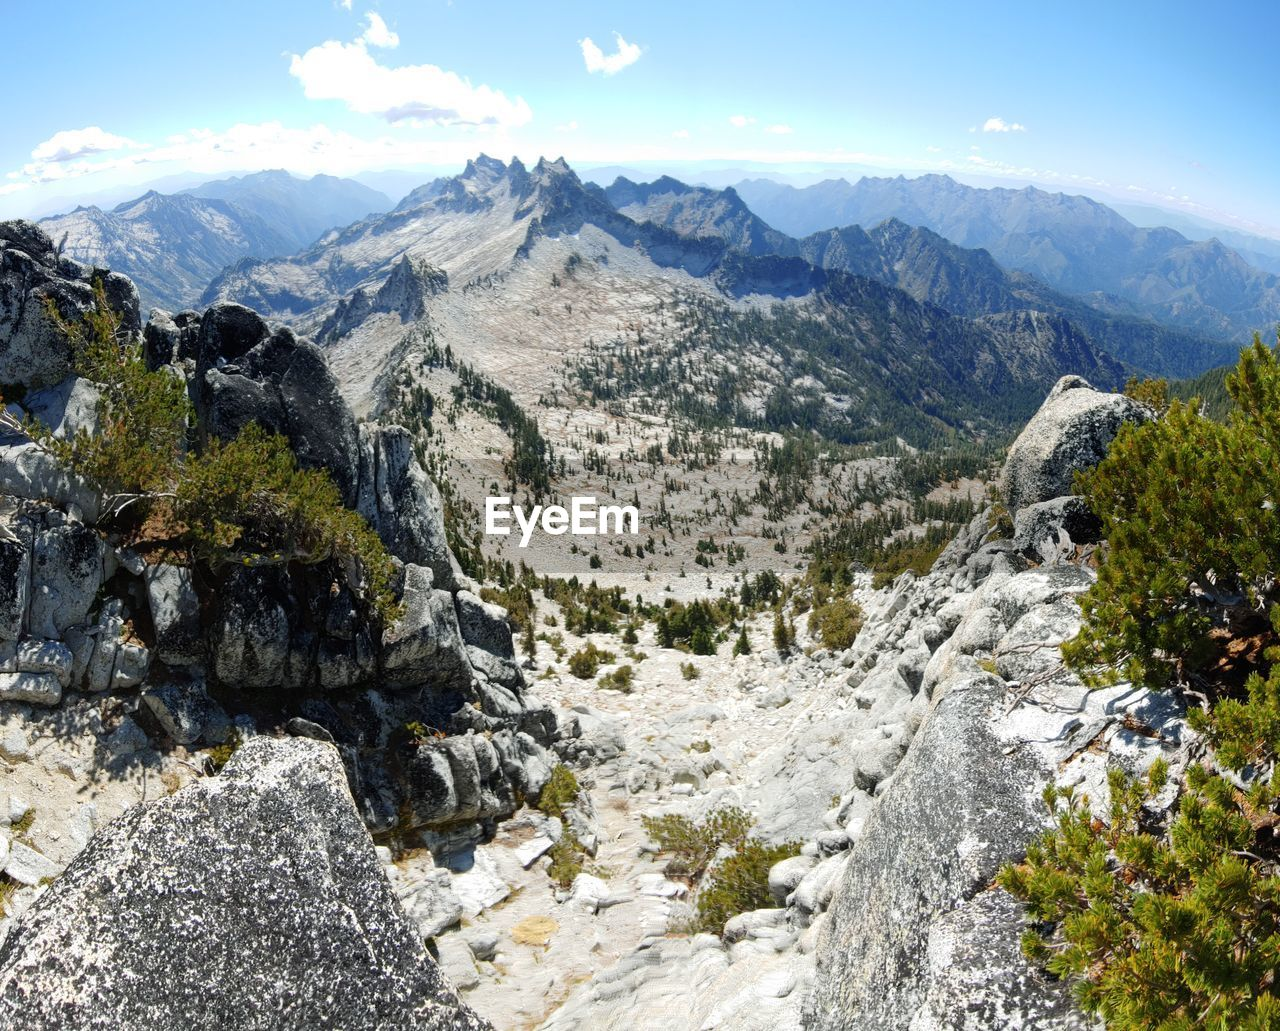 mountain, scenics - nature, beauty in nature, sky, mountain range, tranquil scene, environment, nature, landscape, rock, no people, plant, tranquility, non-urban scene, solid, day, rock - object, outdoors, cloud - sky, tree, mountain peak, formation